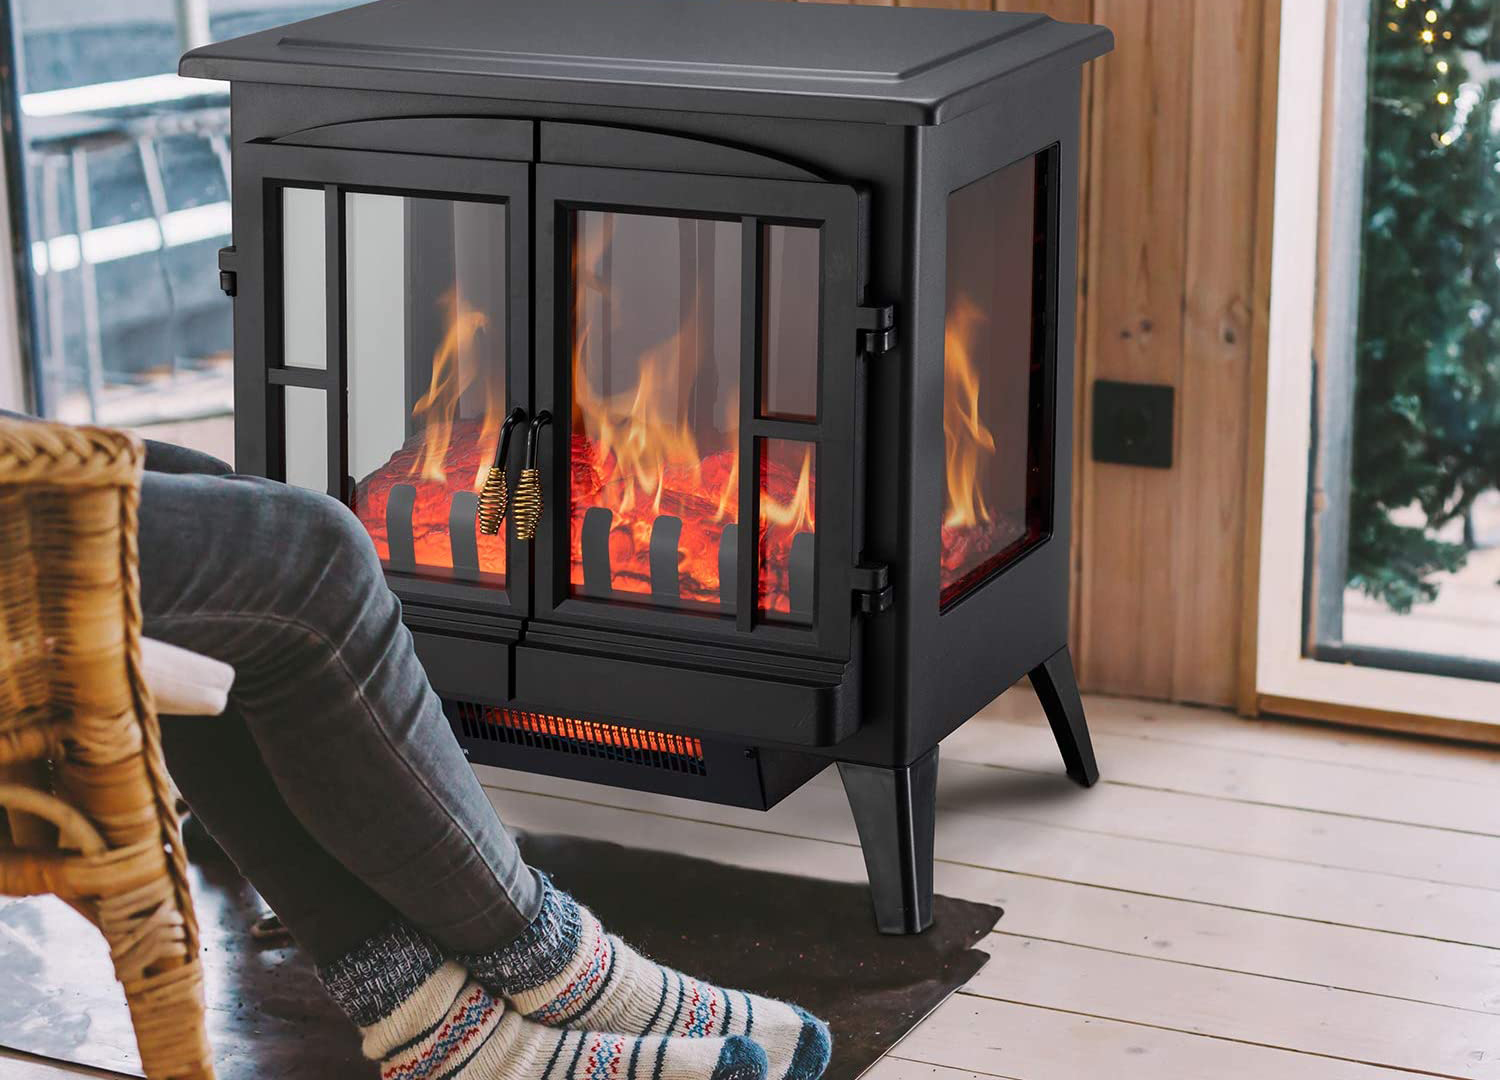 Electric Fireplaces Are The Coziest Home Trend Of 2020 Here Are The 5 Best Ones To Shop Now Southern Living